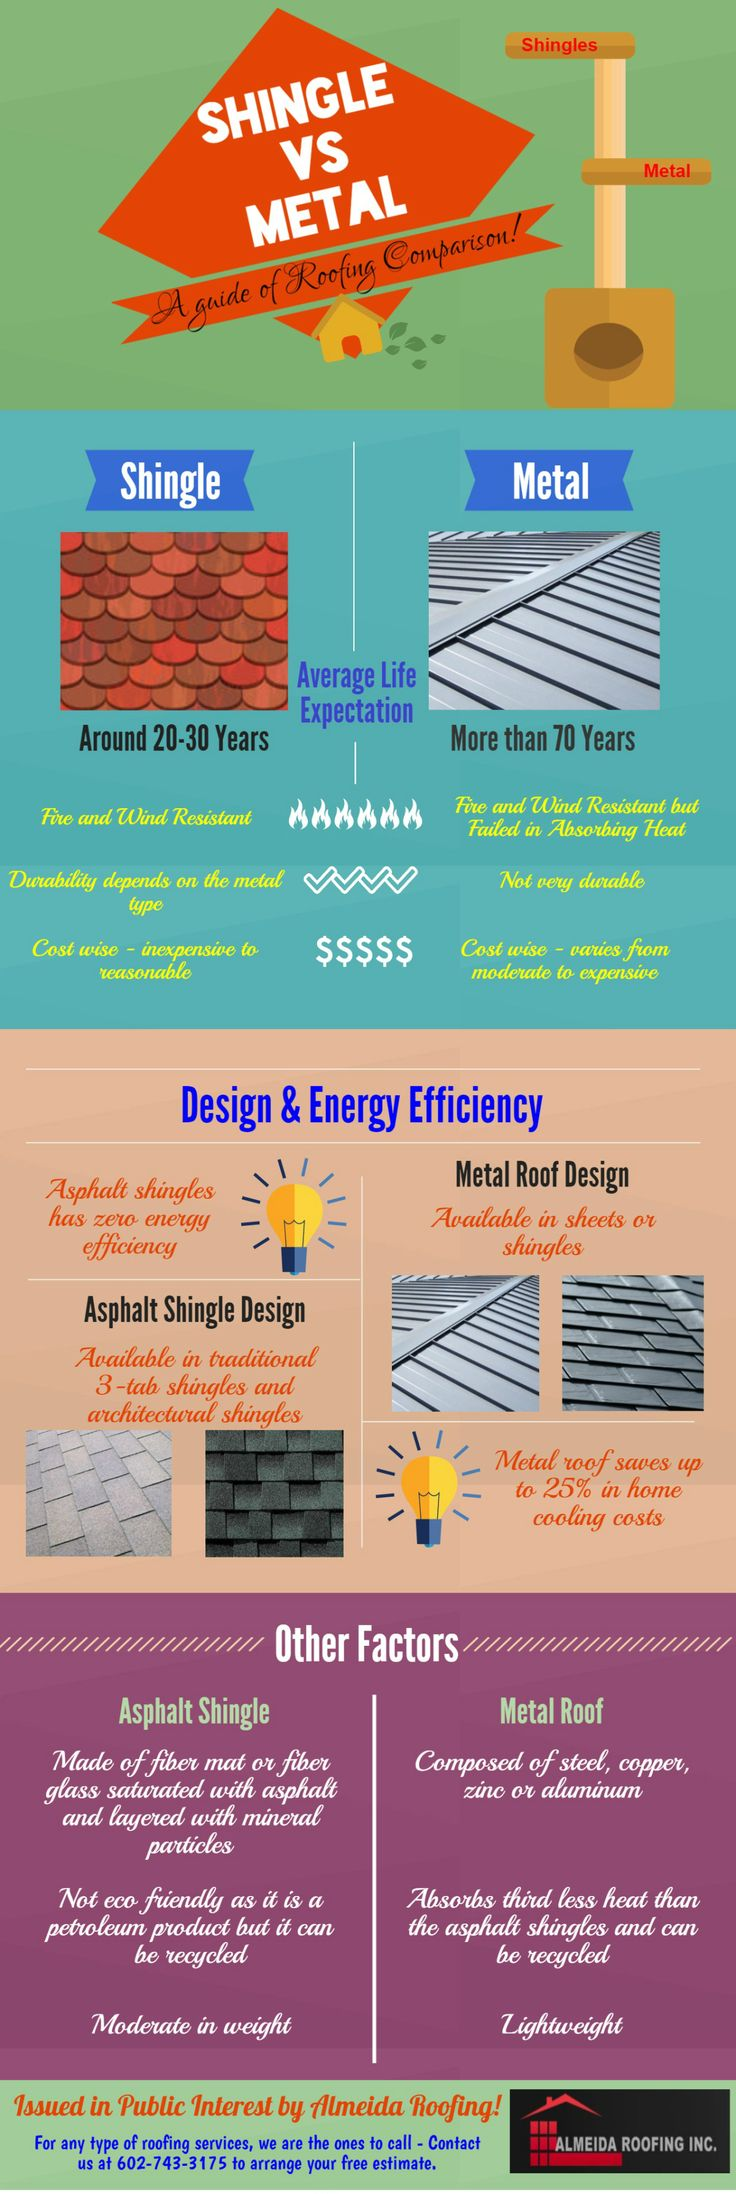 All You Need to about Shingle vs Metal Roofing #PhoenixRoofers #localRoofingContractors